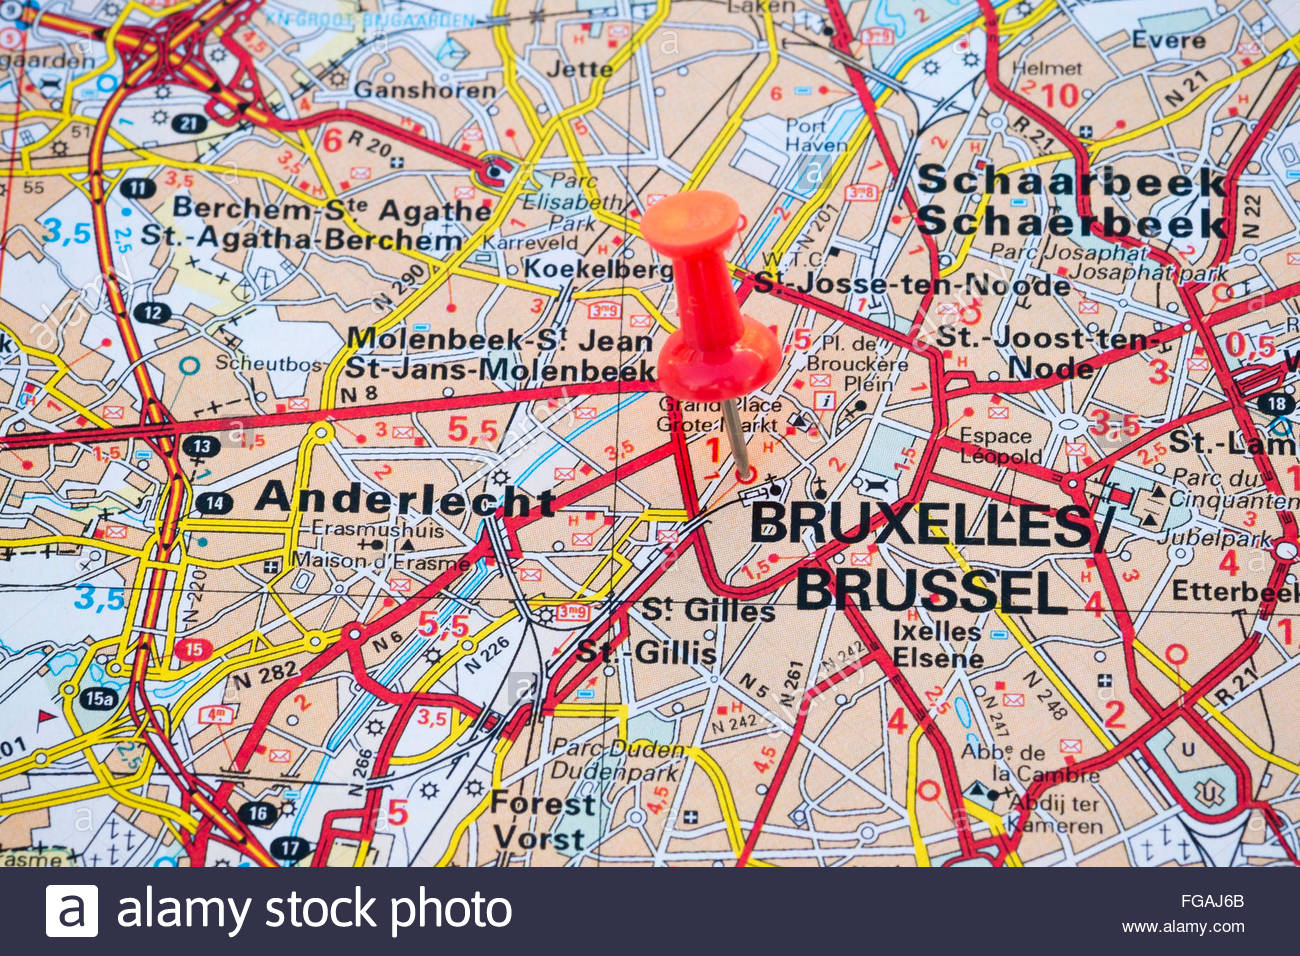 Map Of Brussels Capital City Belgium Stock Photo Royalty Free - Brussels belgium map